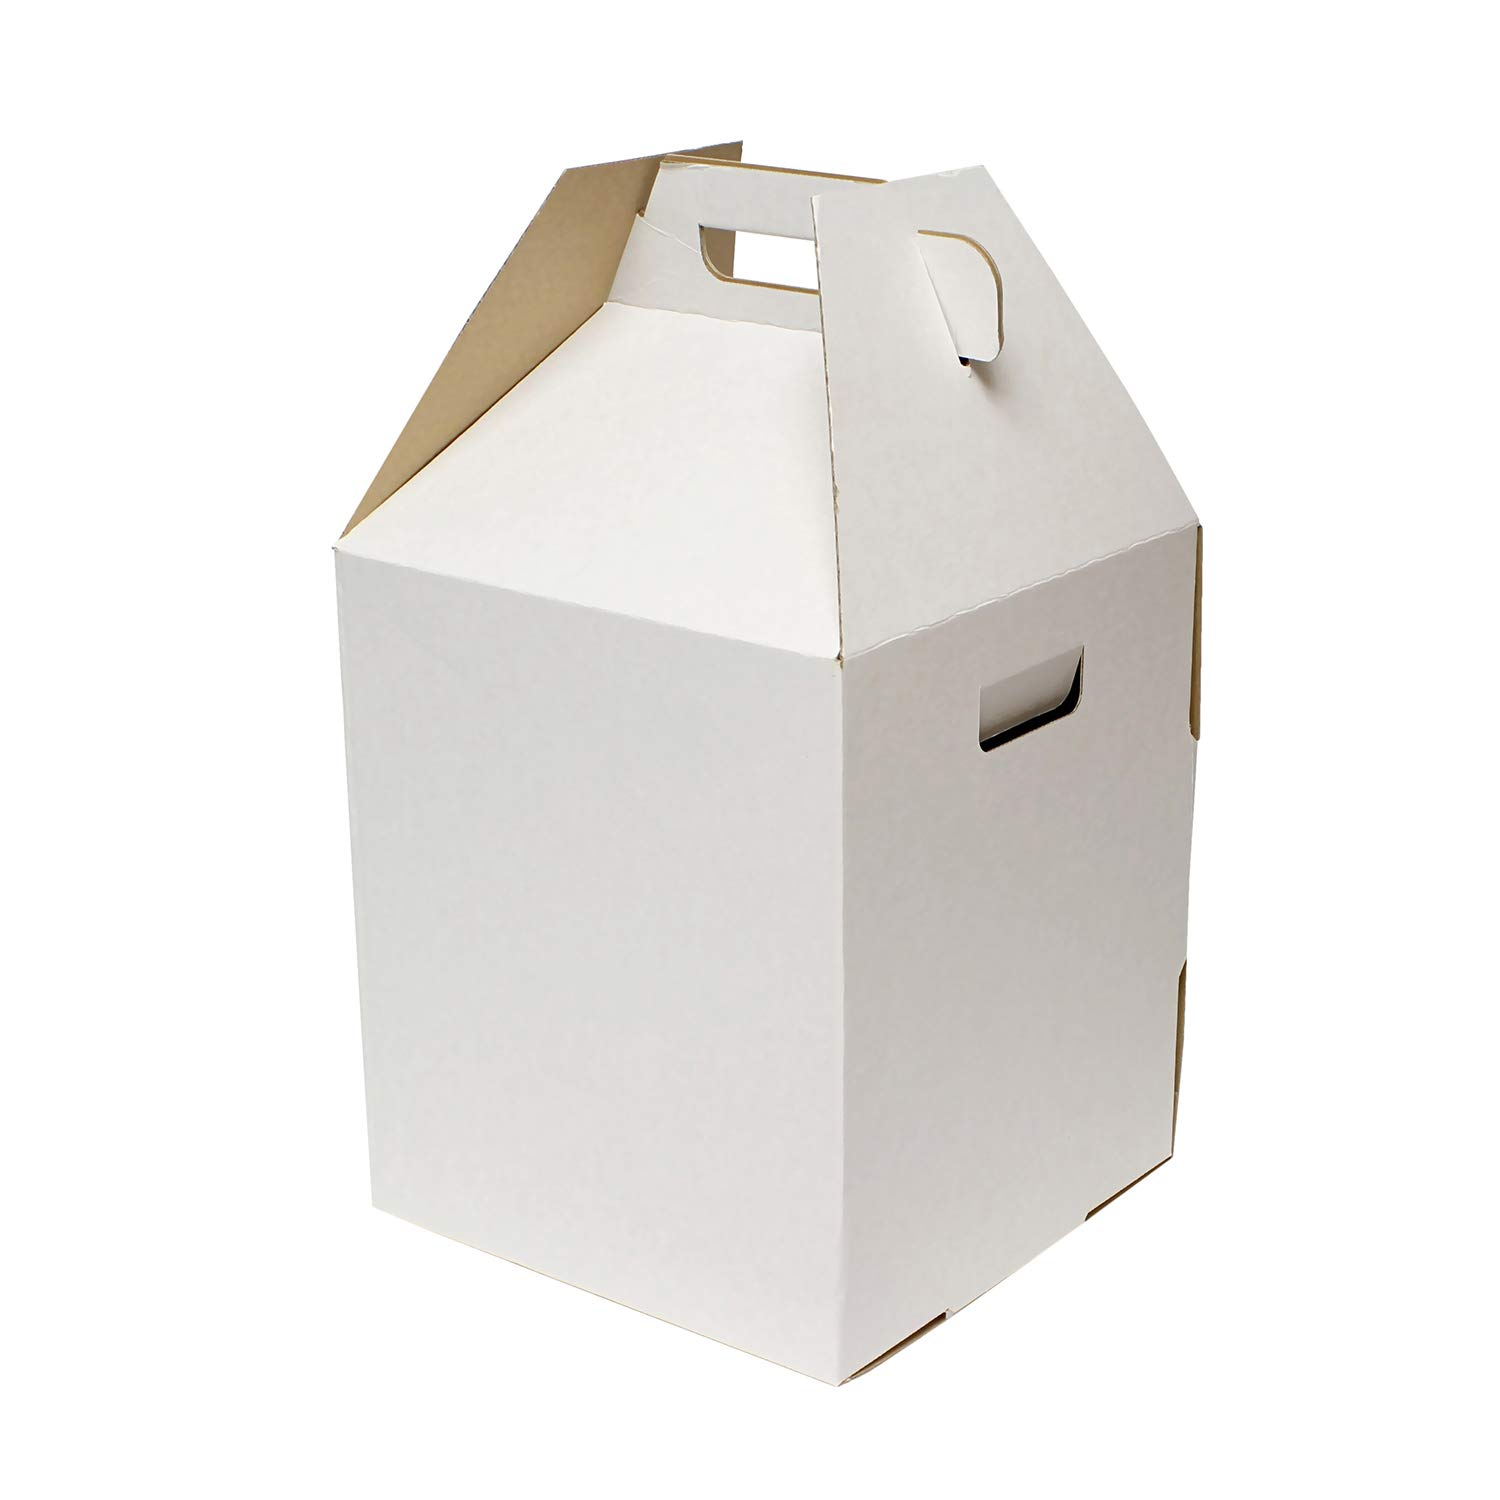 SpecialT Tiered Cake Box, 10 Pack - 12 x 12 x 14 Inch White Cake Transporter Boxes, 2 and 3 Tier Cake Box